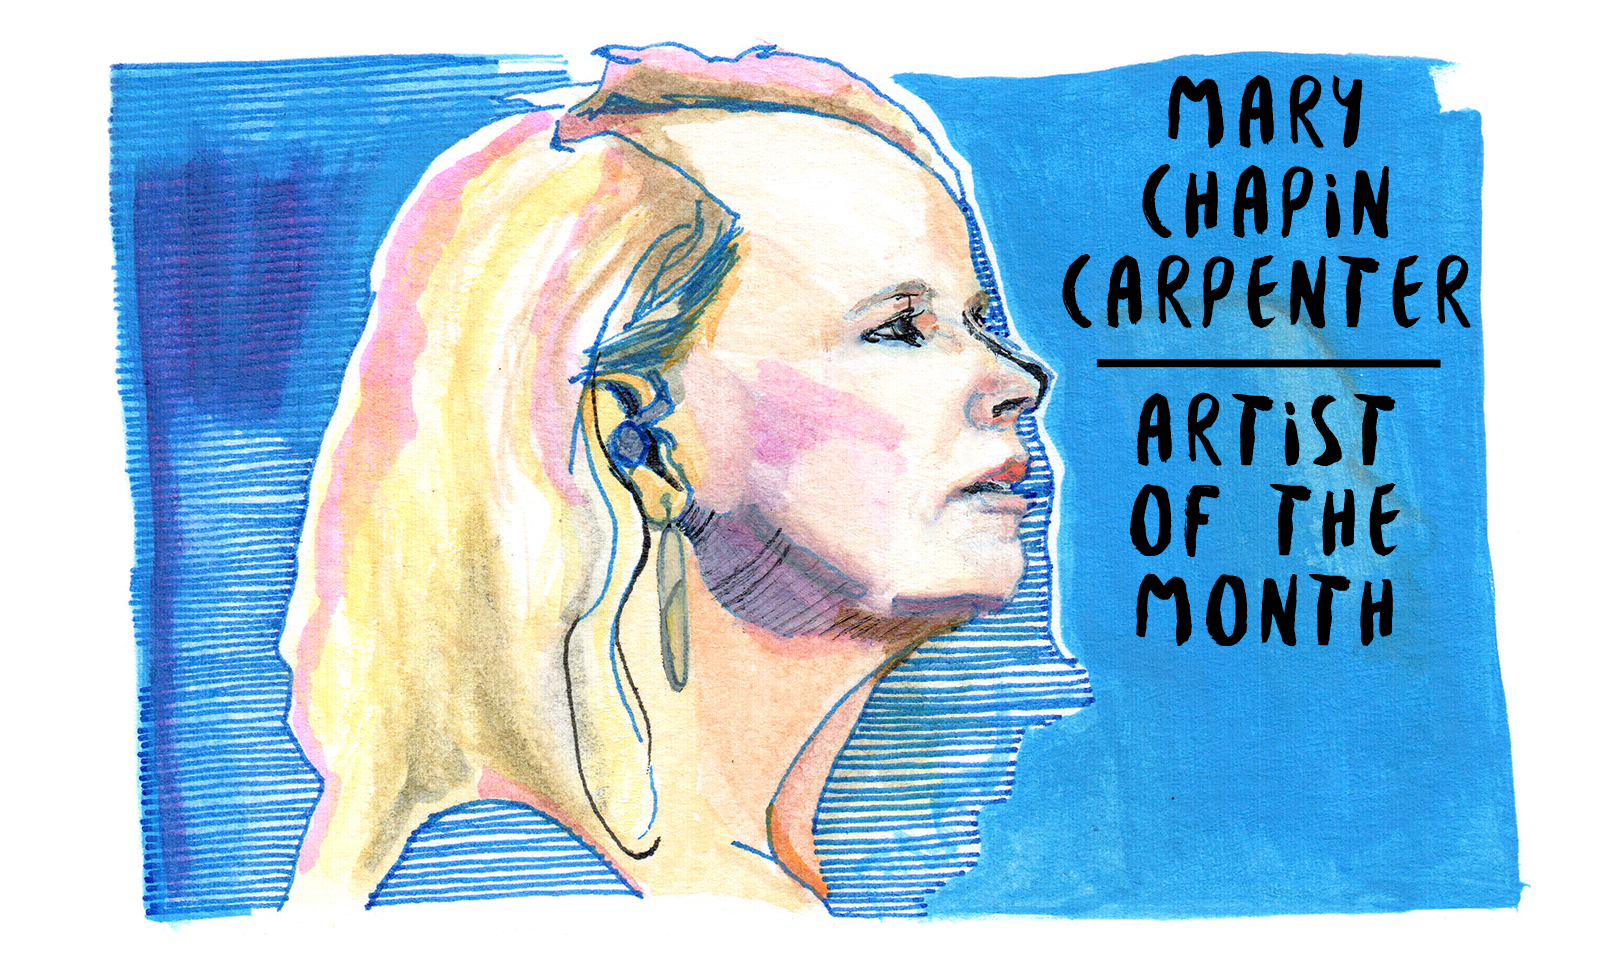 Mary Chapin Carpenter: Residing within the Questions